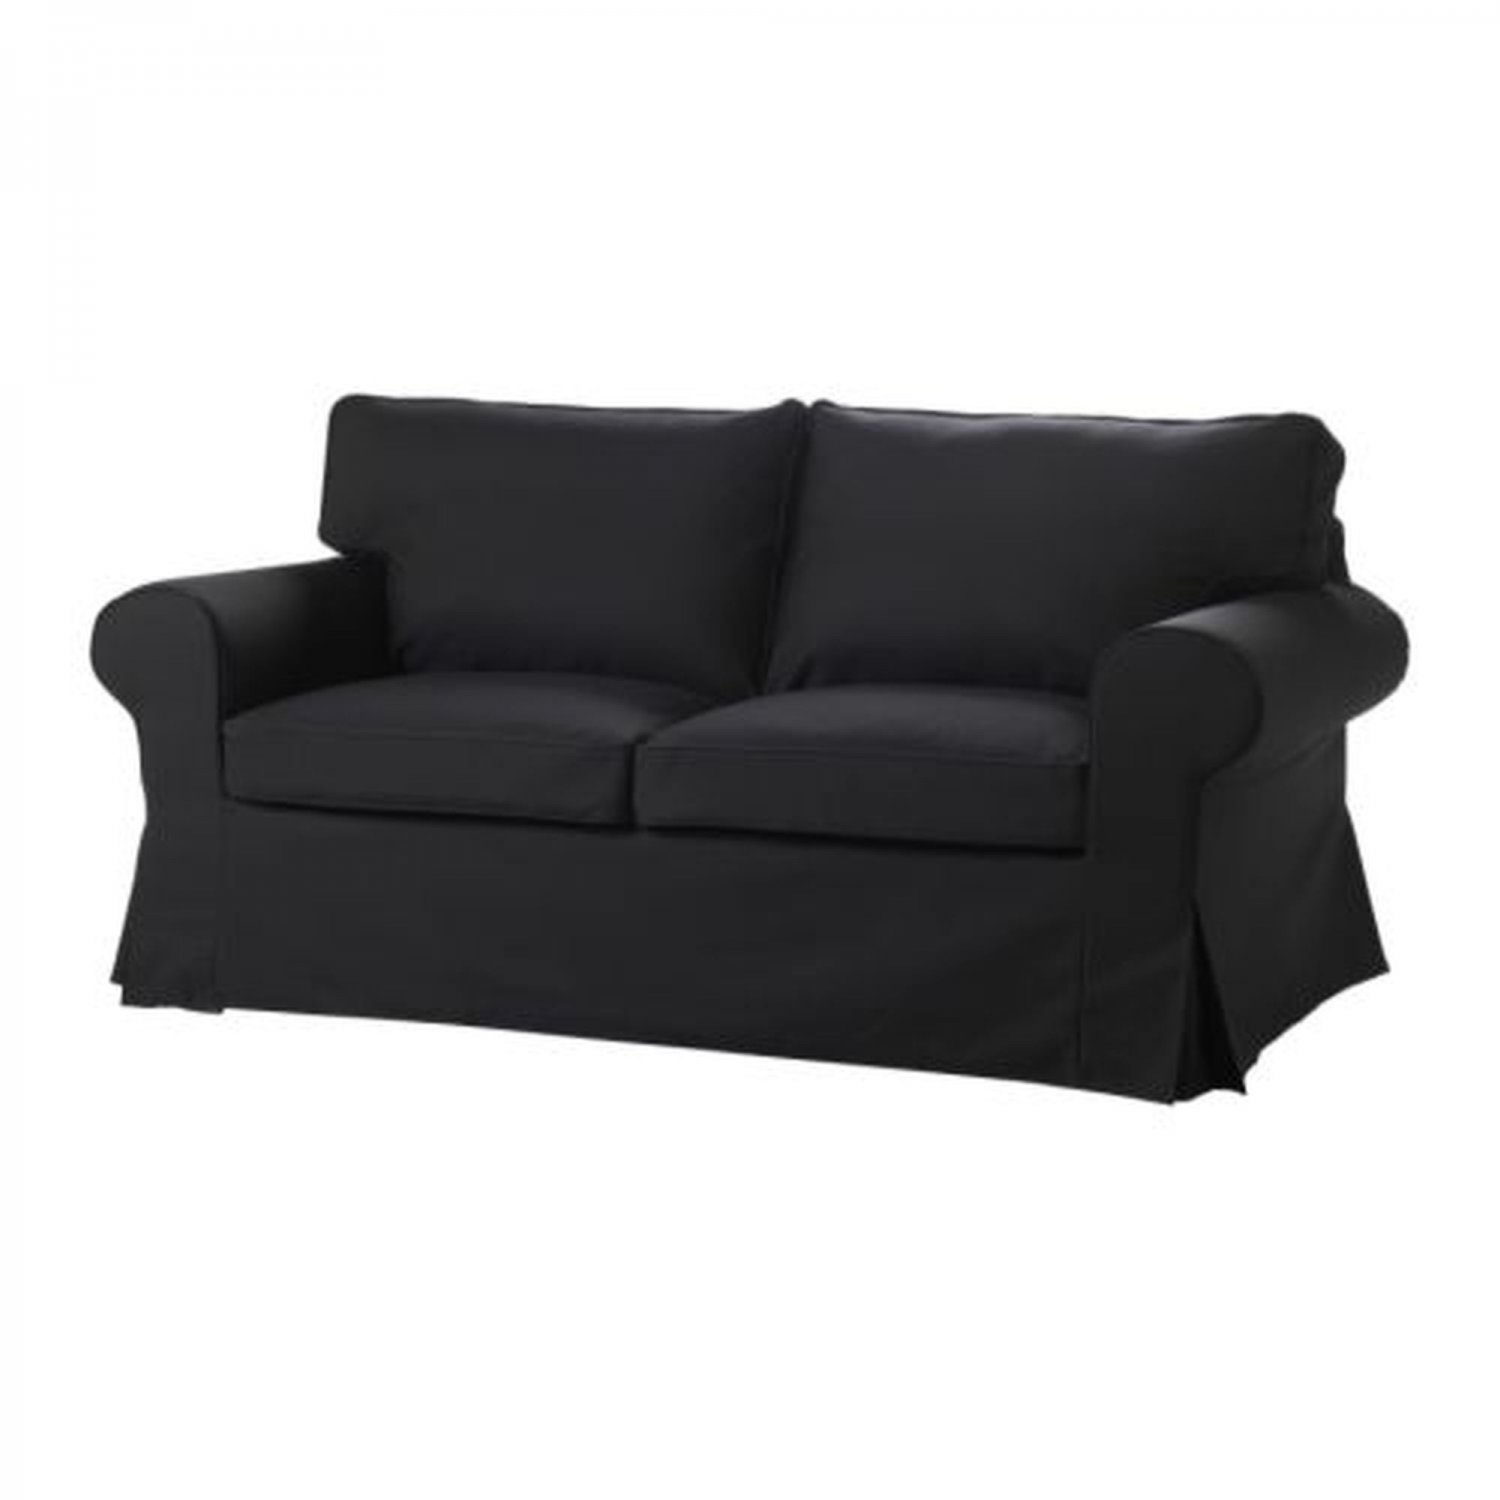 Ikea Ektorp Sofa Bed Slipcover Sofabed Cover Idemo Black Bezug Housse